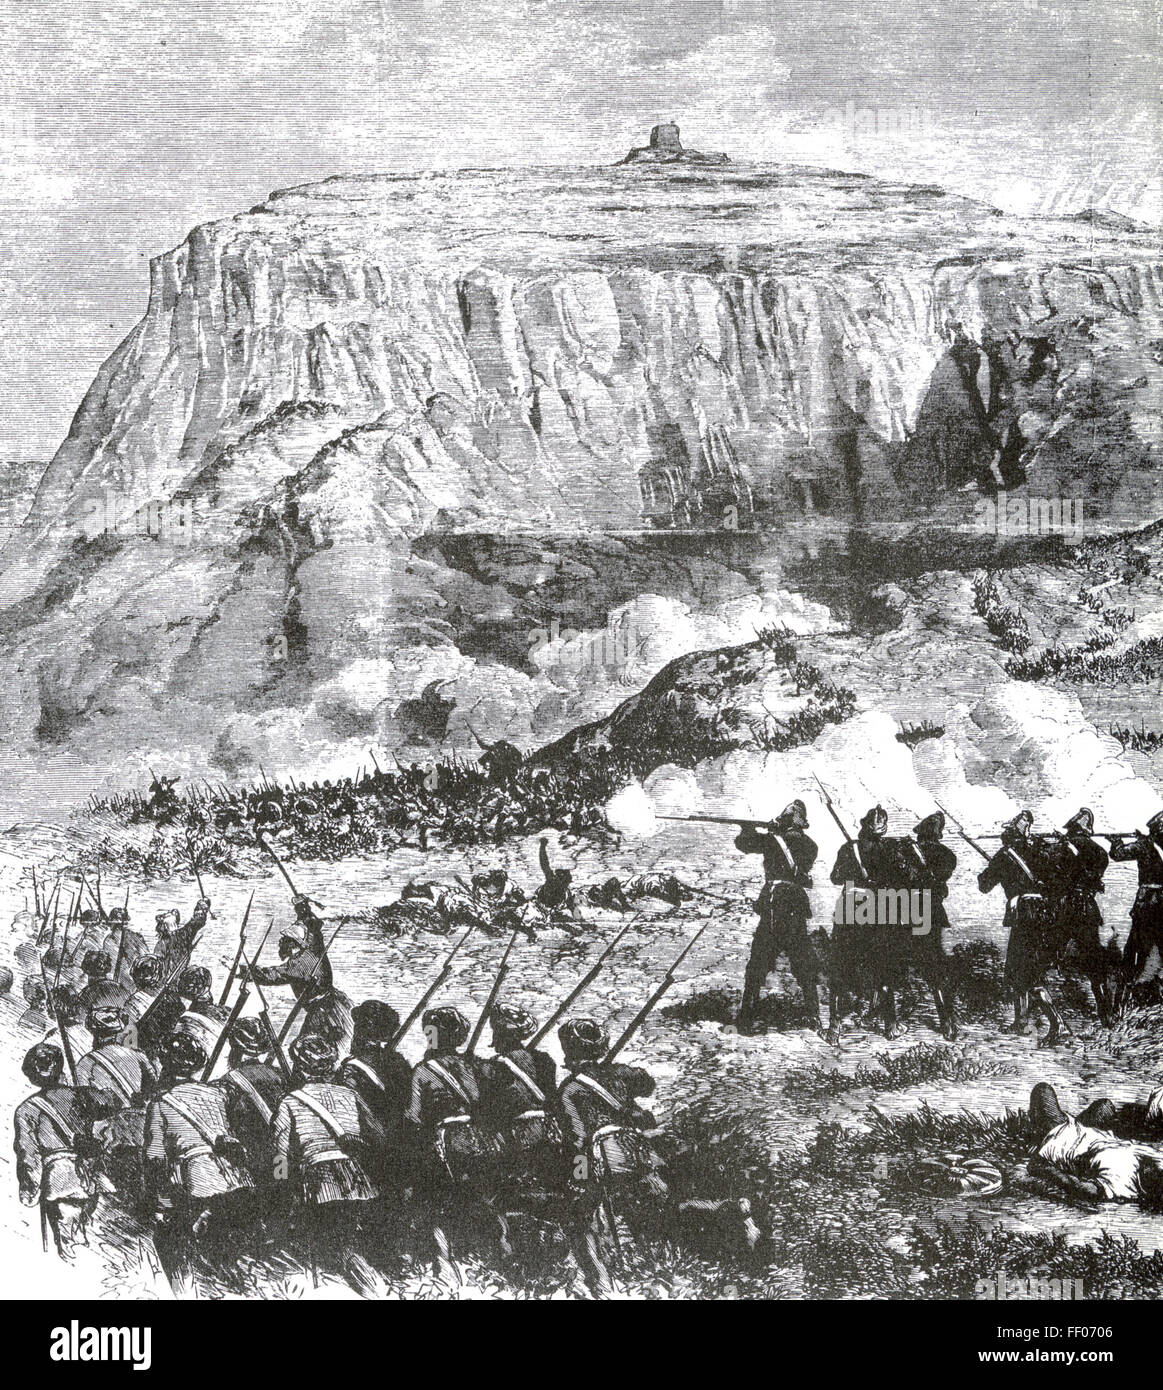 BATTLE OF AROGHEE, Abyssinia,  10 April 1868 with British troops advancing  on Magdala - Stock Image